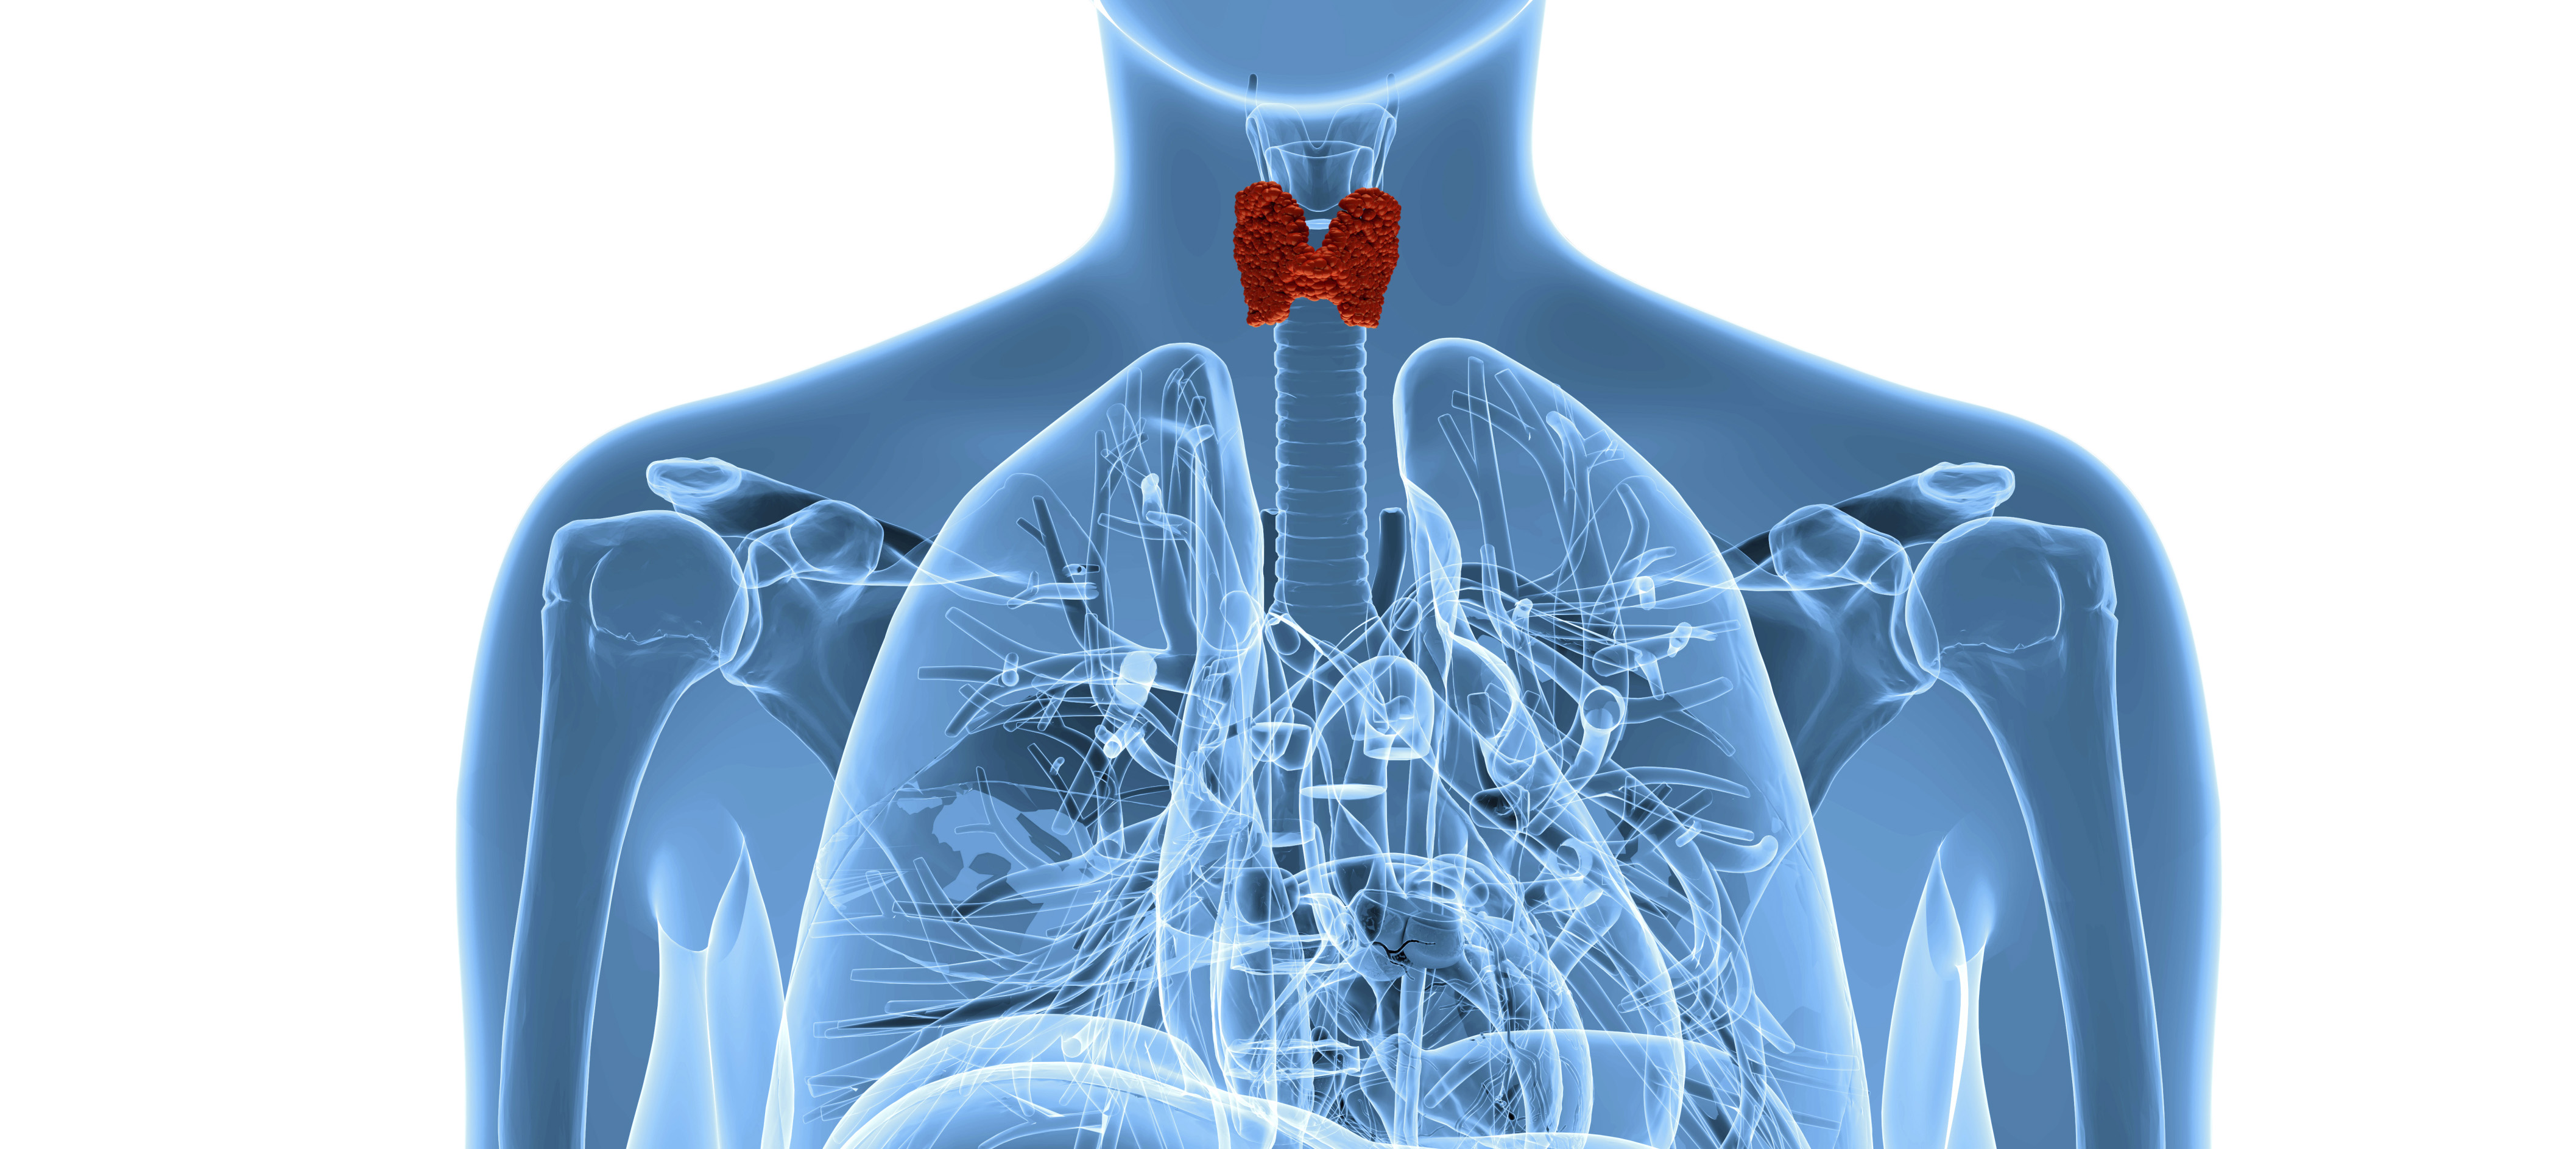 A Duke study finds patients who need their thyroid gland removed should seek surgeons who perform 25 or more thyroidectomies a year for the least risk of complications.